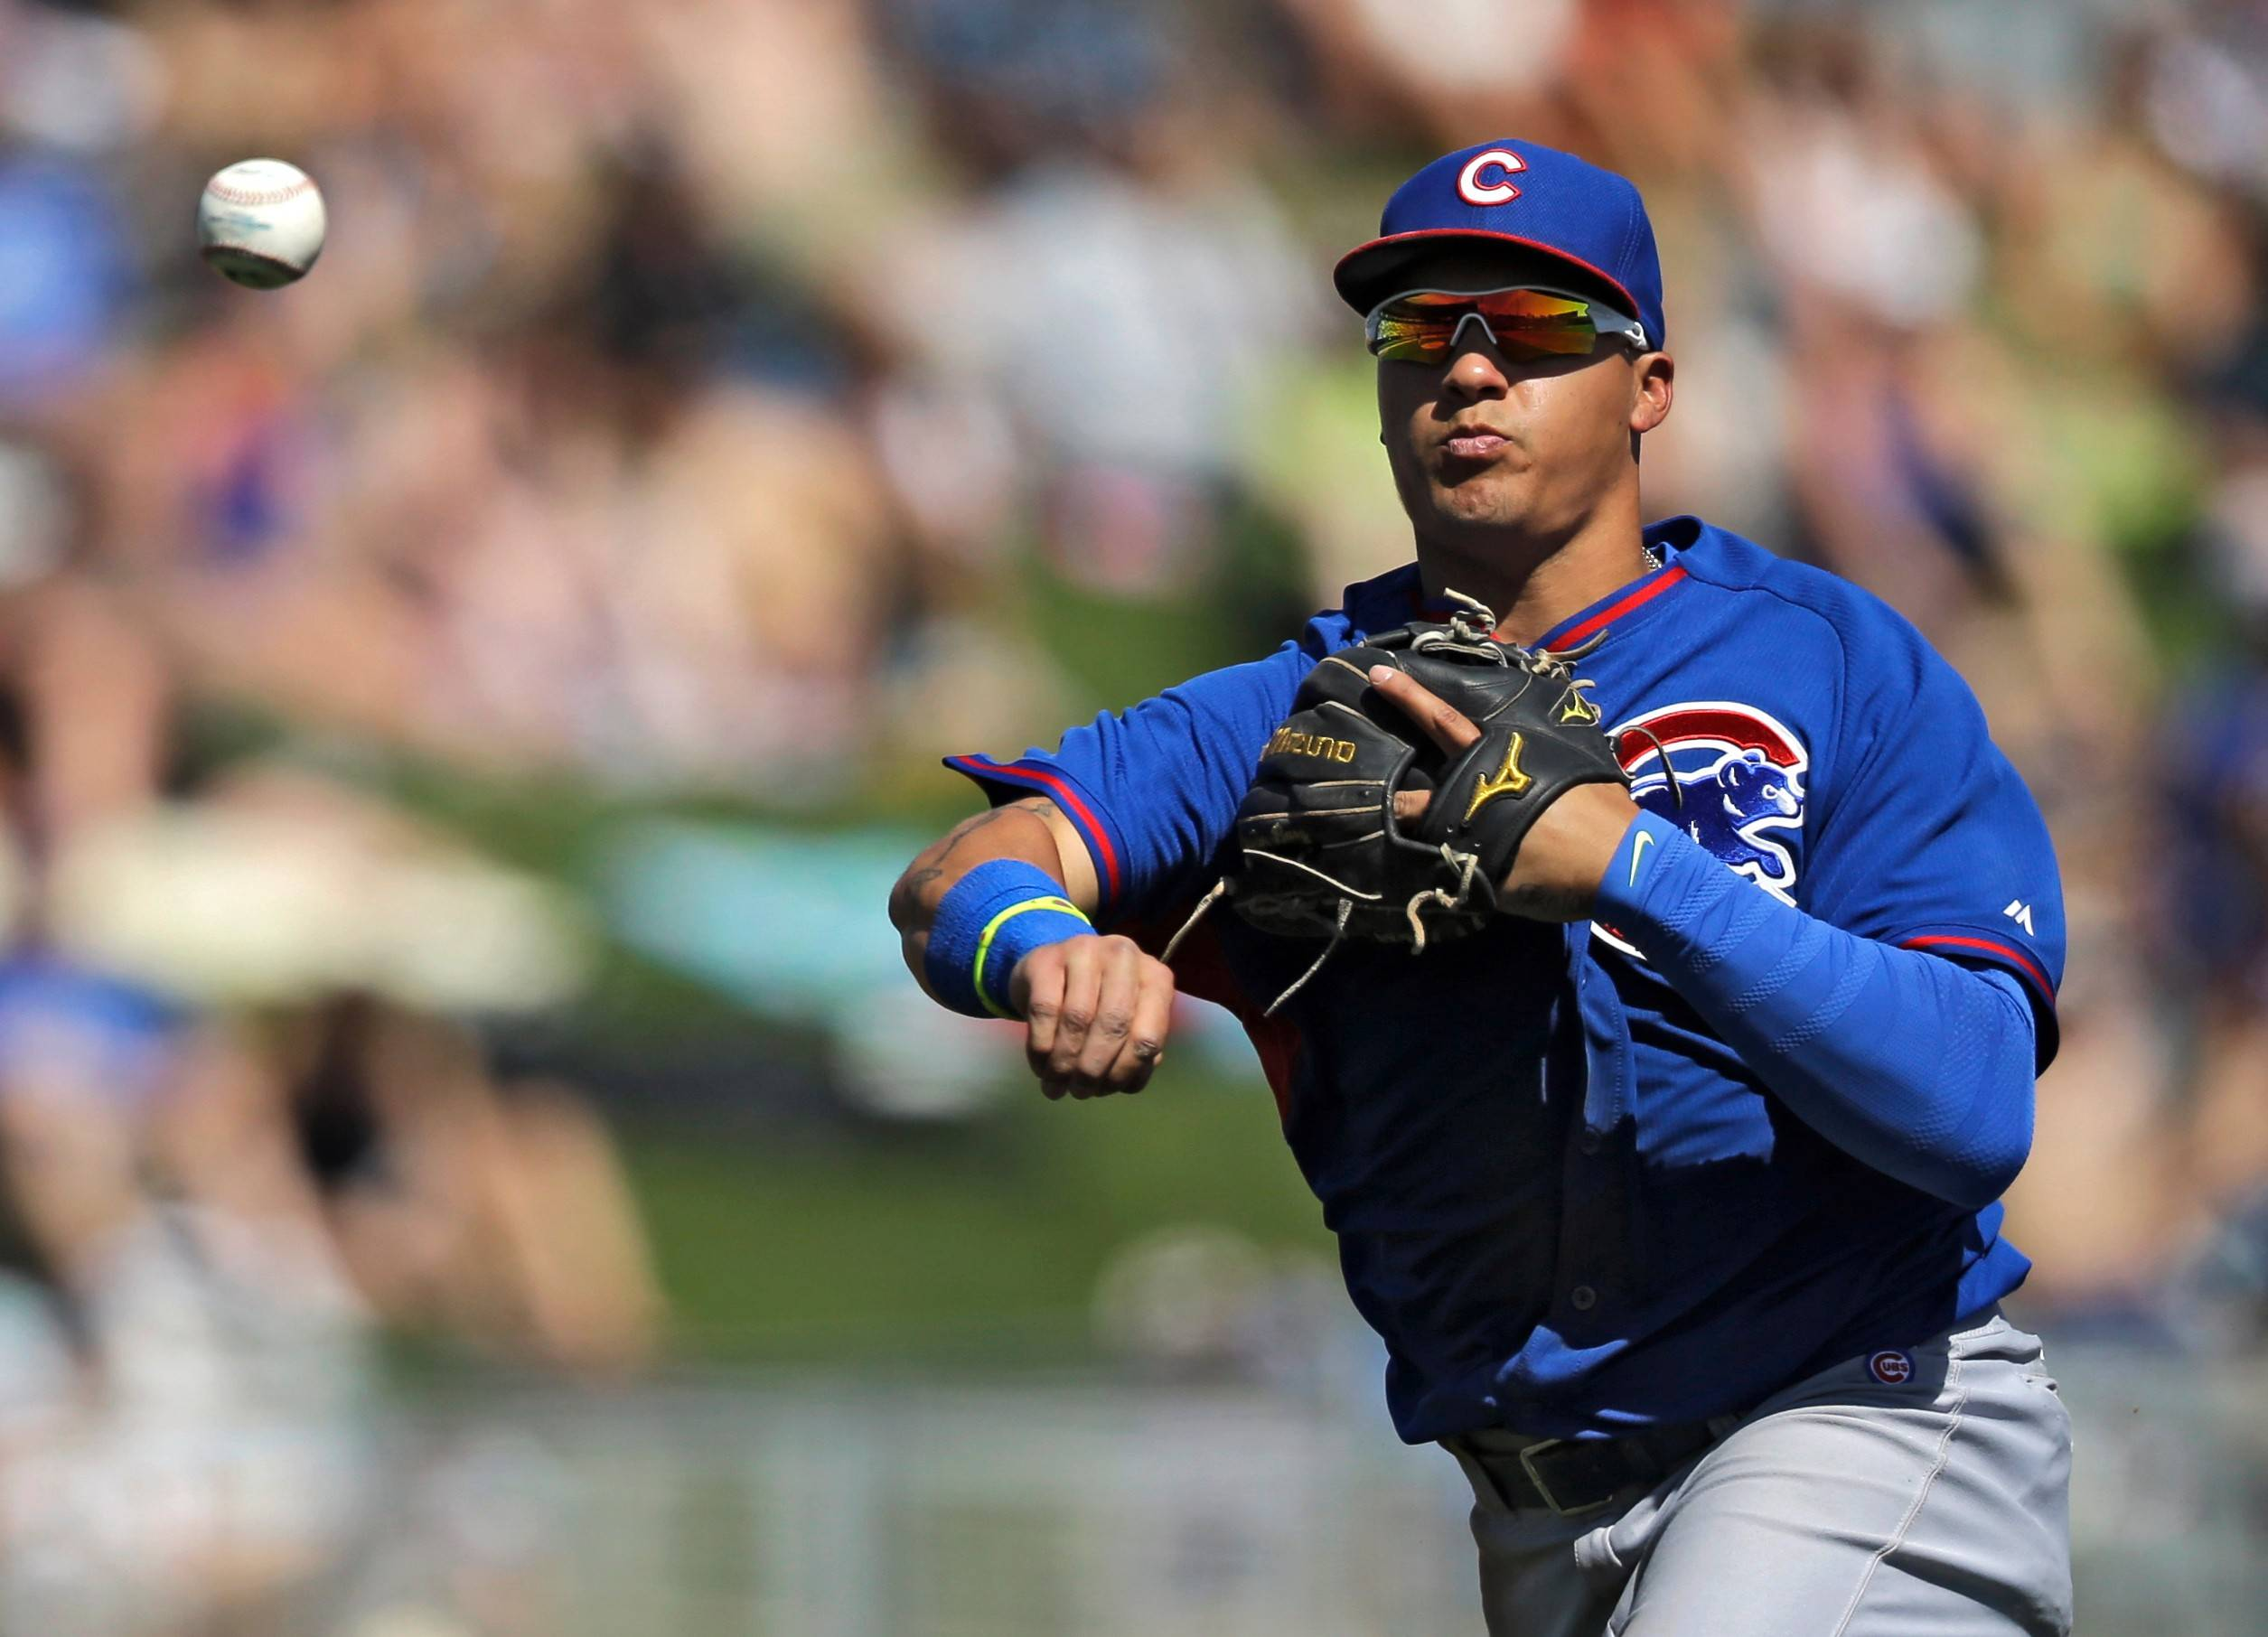 The Chicago Cubs will have infielder Javier Baez join them for their three-game series starting Tuesday at Coors Field against the Colorado Rockies.